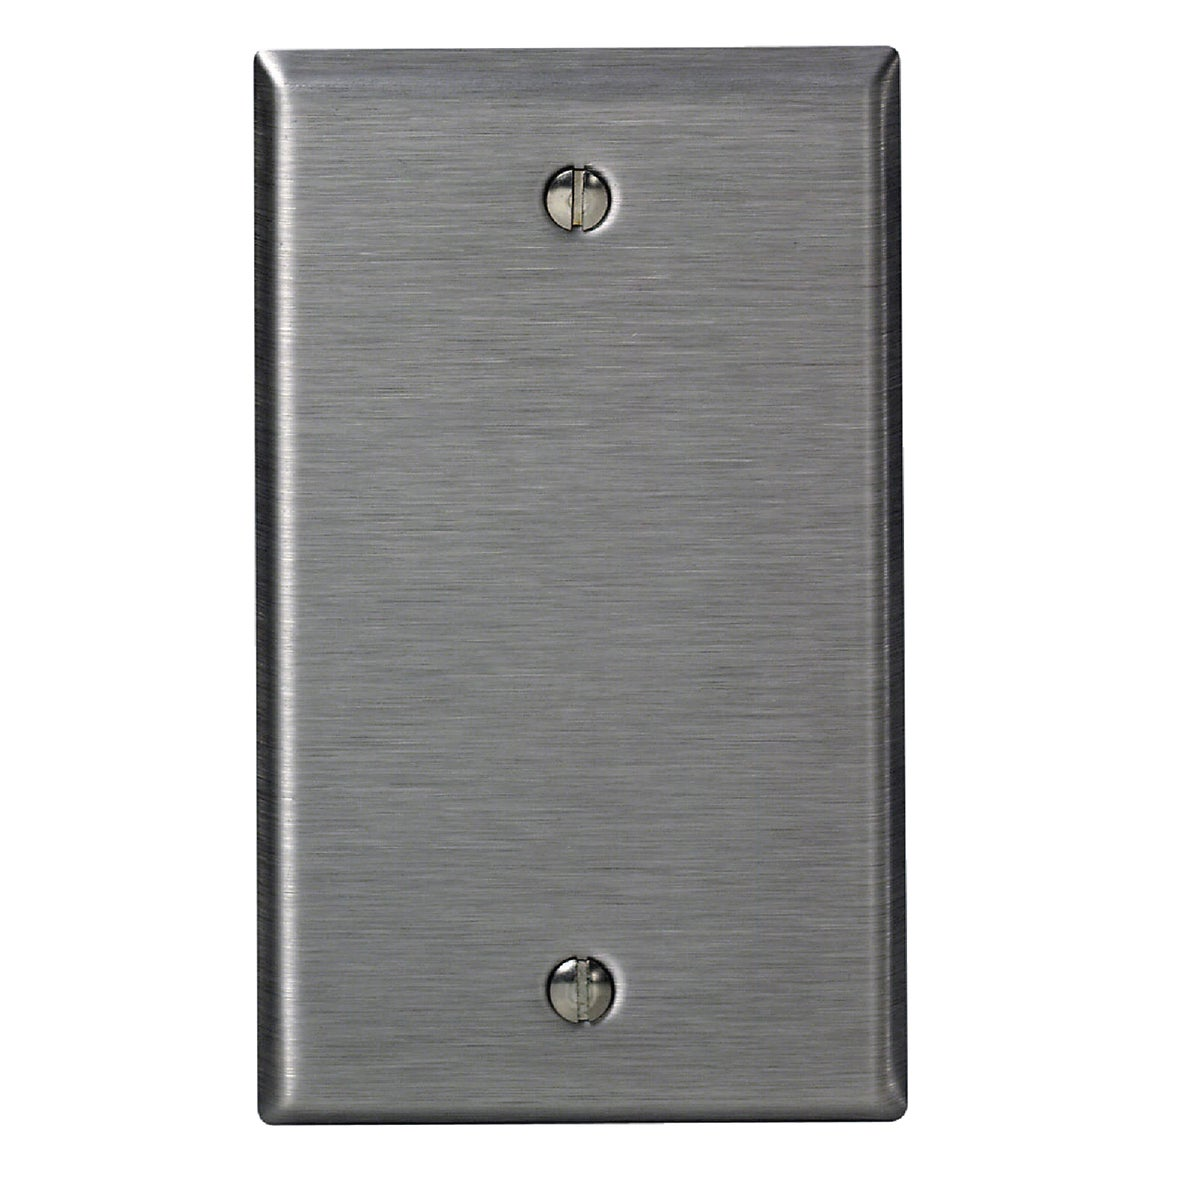 SS BLANK WALL PLATE - 84014 by Leviton Mfg Co